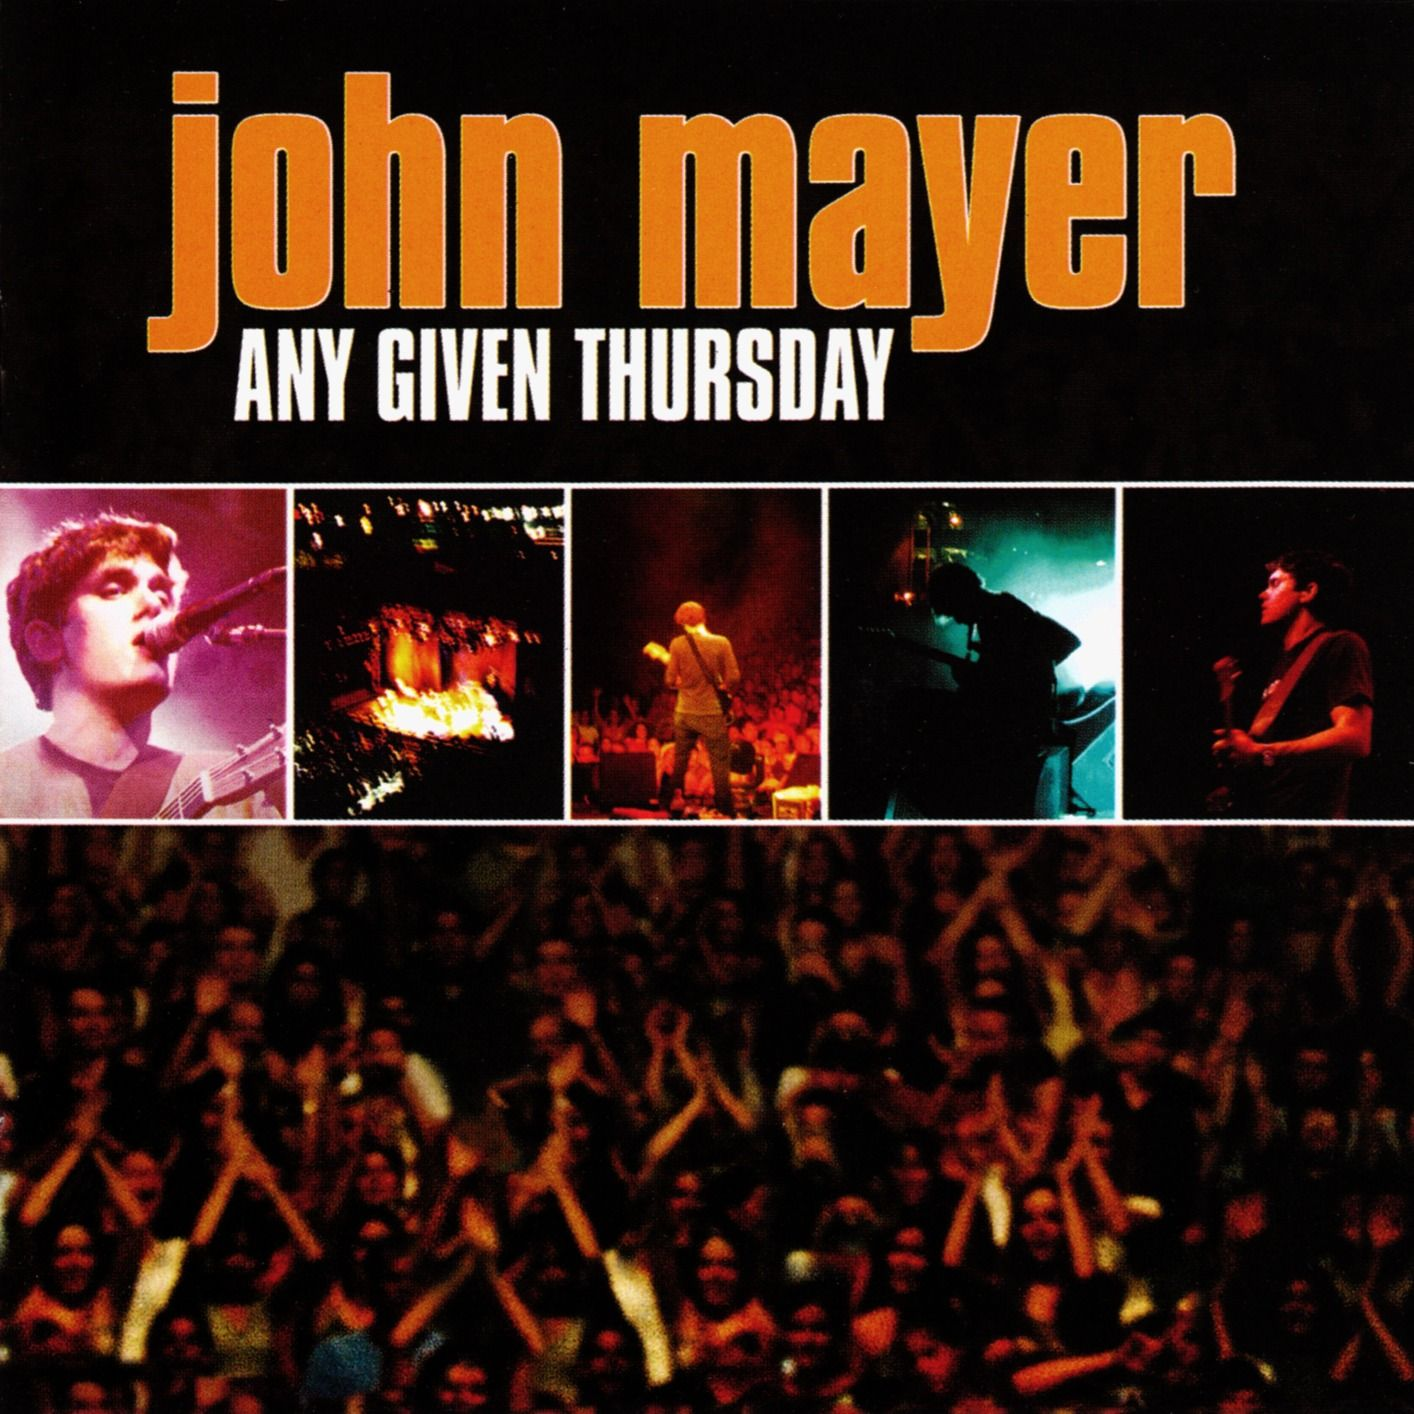 John Mayer - Any Given Thursday album cover